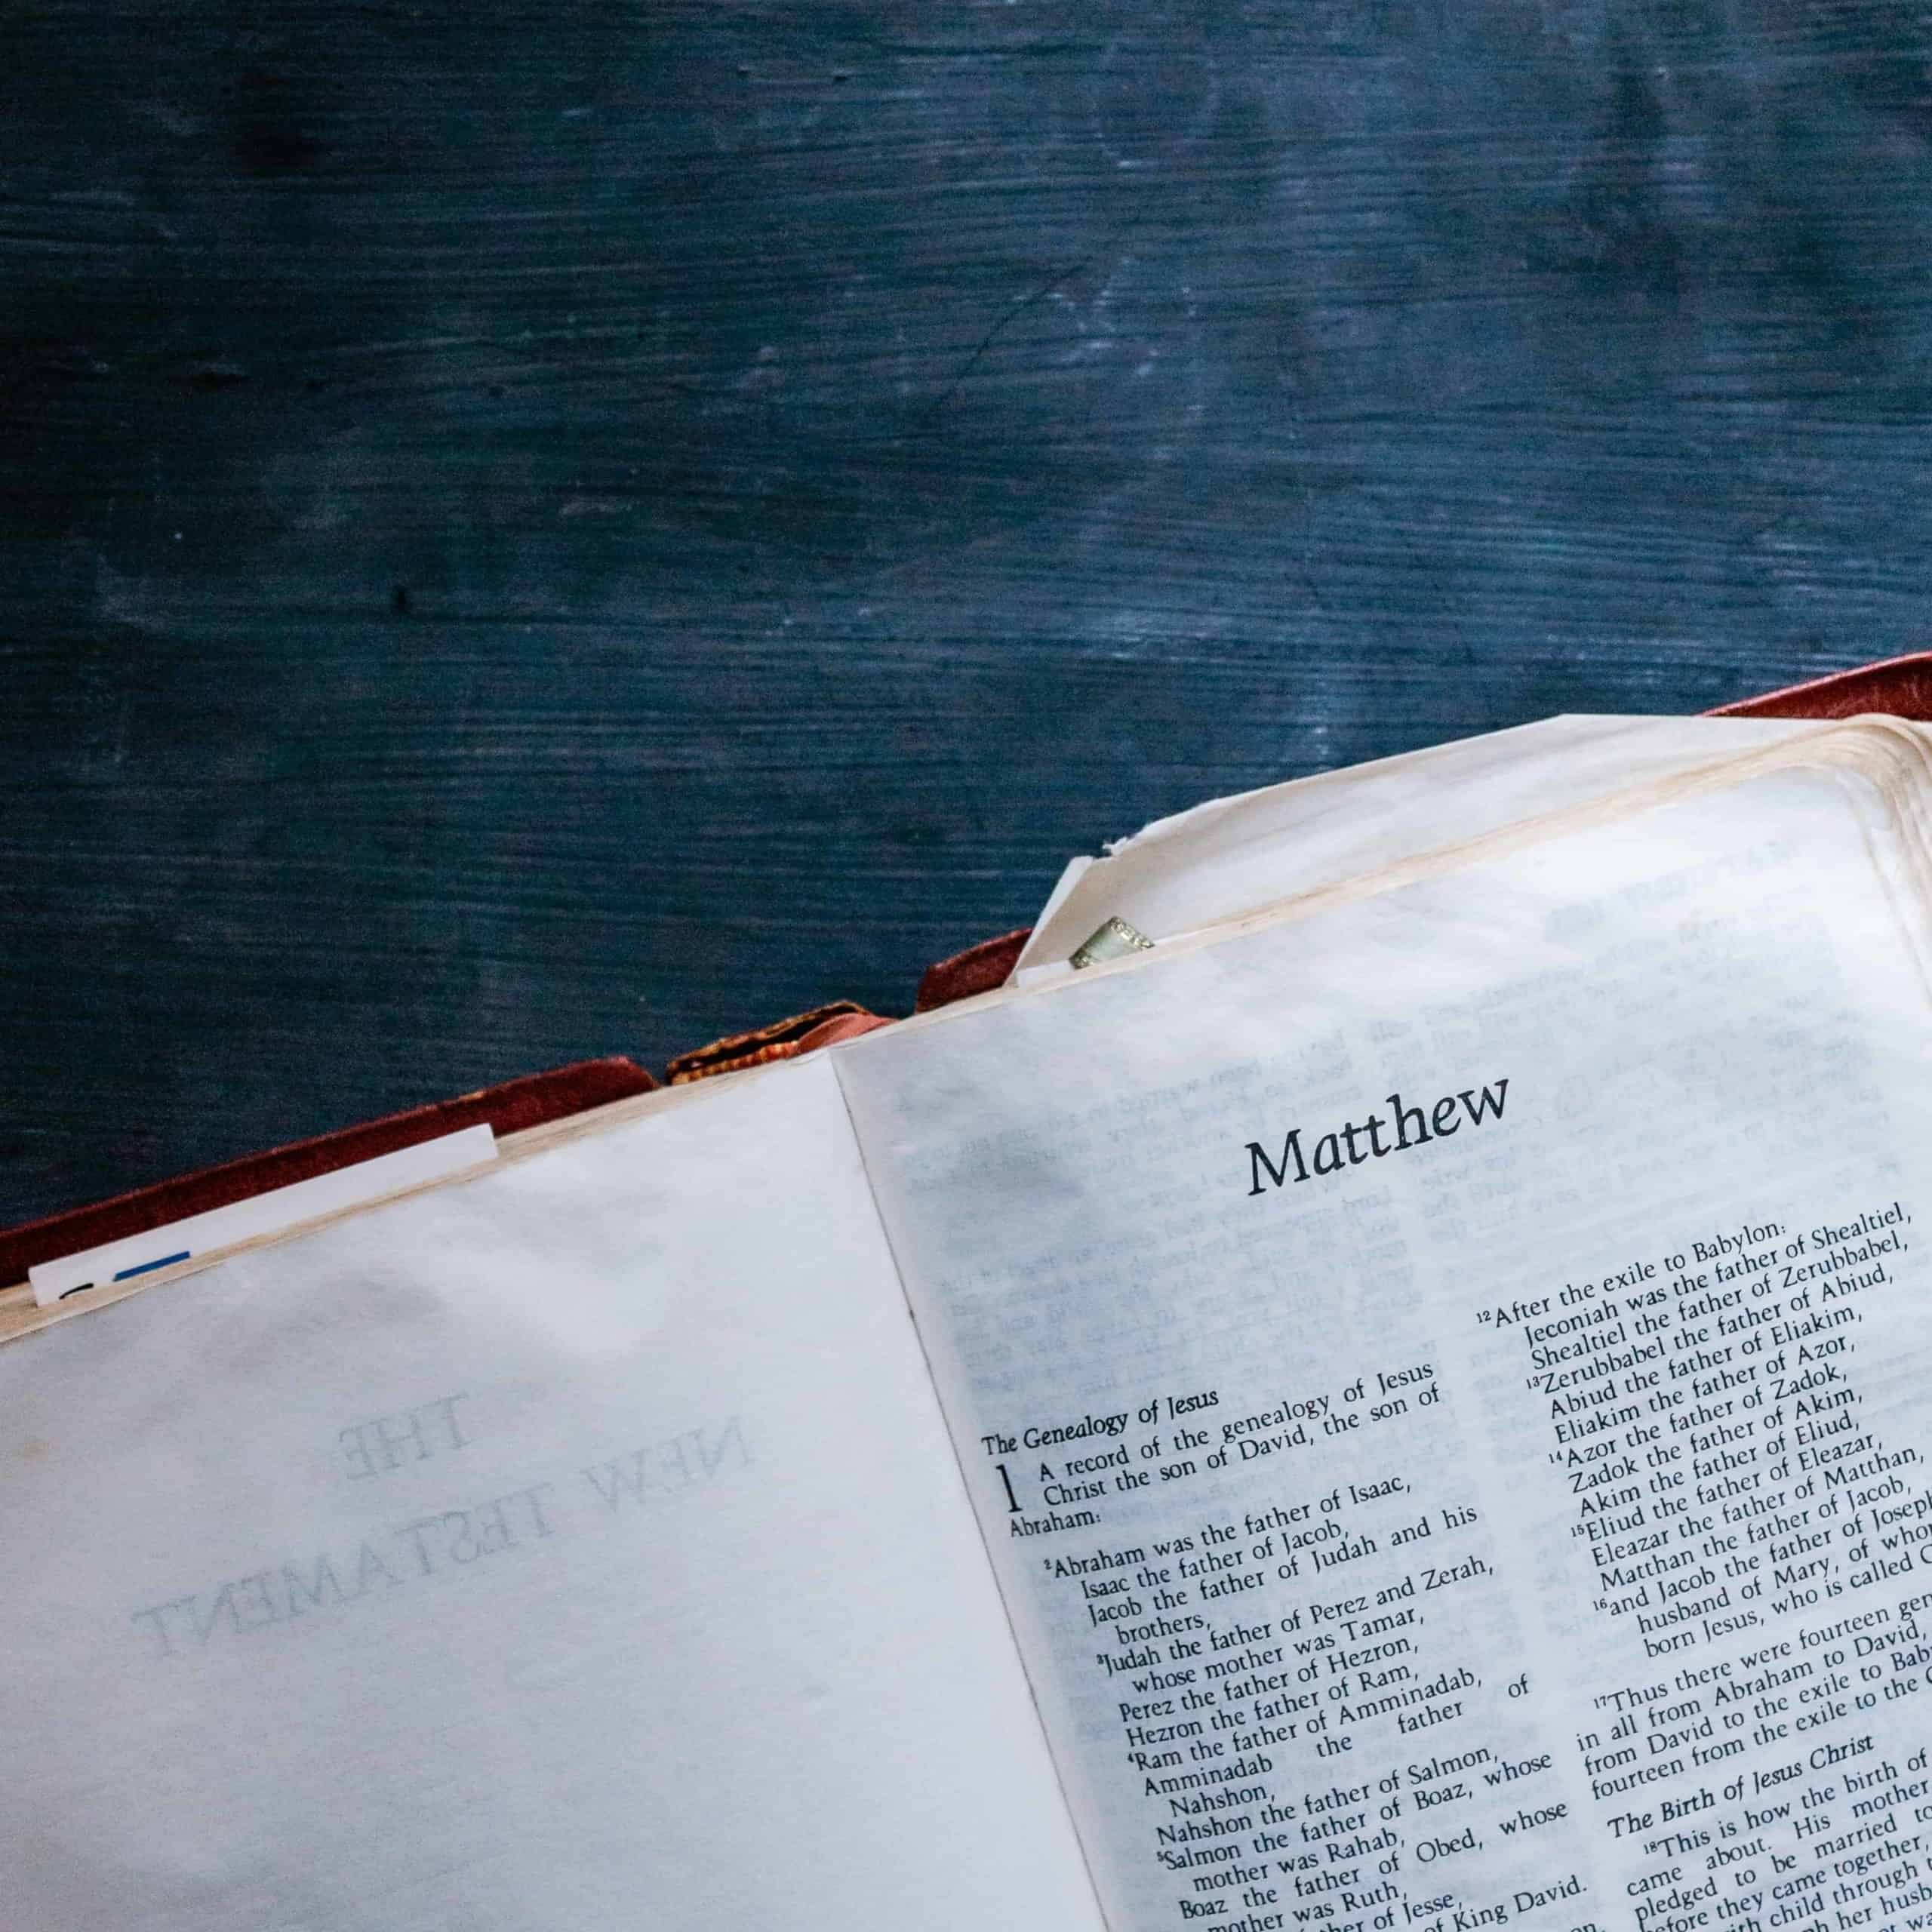 The Bible open to the book of Matthew.